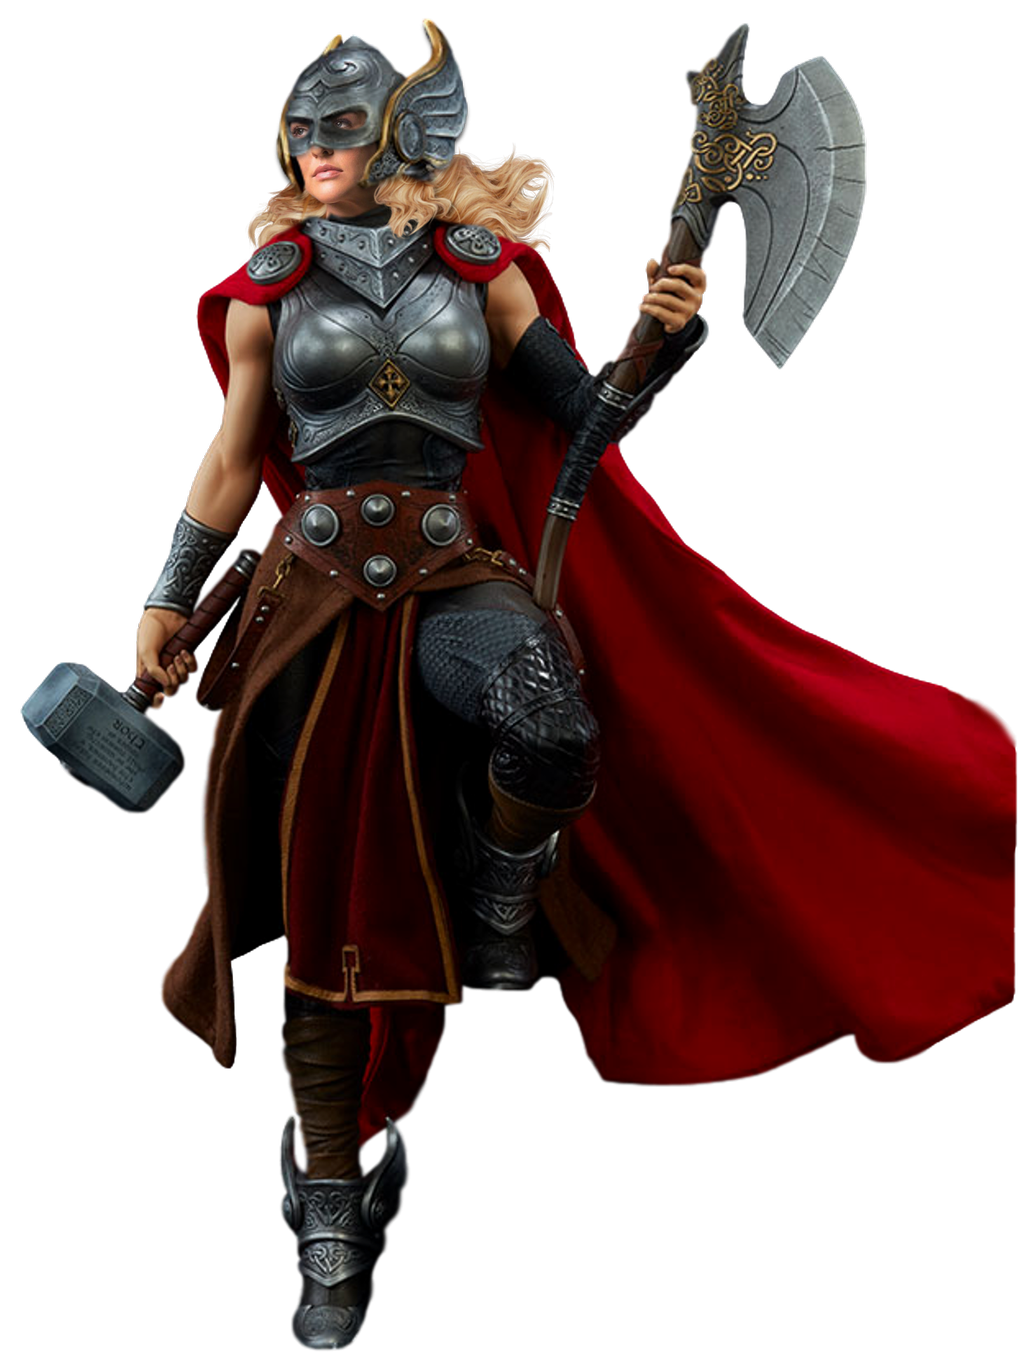 Jane Foster's Thor - Transparent! by Camo-Flauge on DeviantArt | Thor girl,  Thor, Female thor